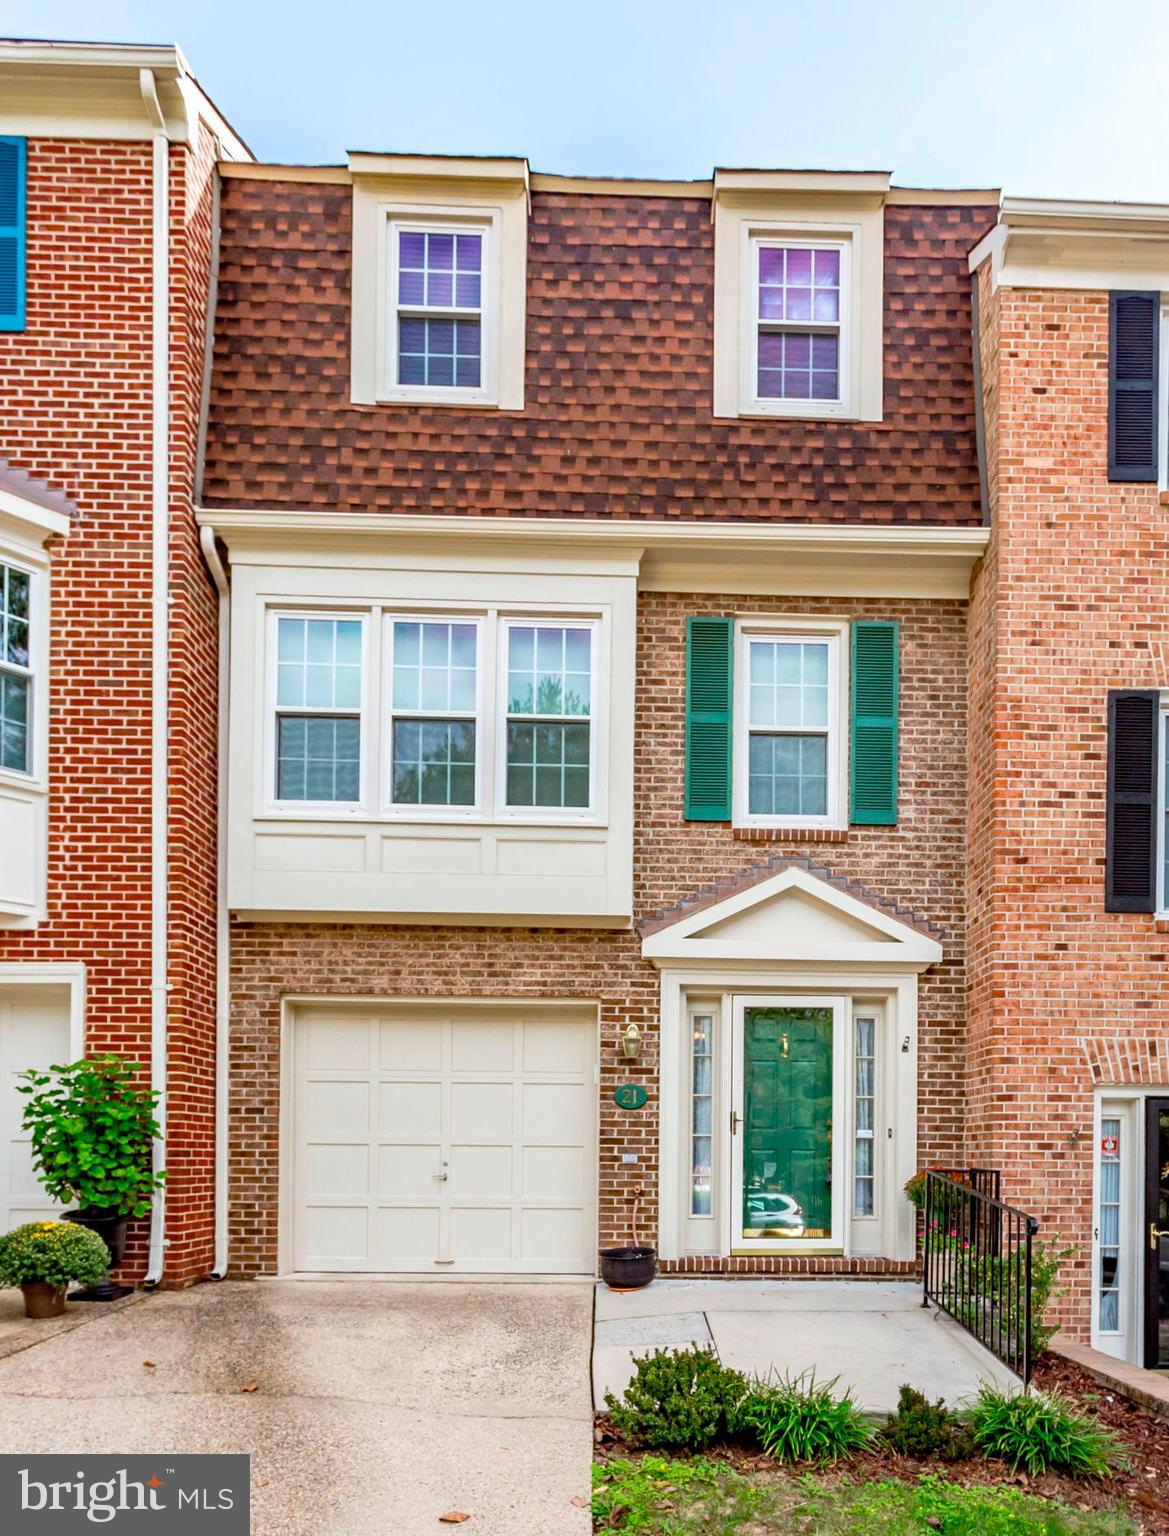 3 level Garage Townhome in the heart of Alexandria! 1 minute walk to Dash bus to King St Metro (< than 2 miles) ,Van Dorn Metro & 8Z bus direct to Pentagon! Gleaming hardwood flrs.New paint & carpet! Updated kitchen with SS appliances. Seller's updates include recessed lighting, gas fireplace, roof replaced in 2010, maintenance-free ext. trim, hot water heater, attic insulation & bathroom updates